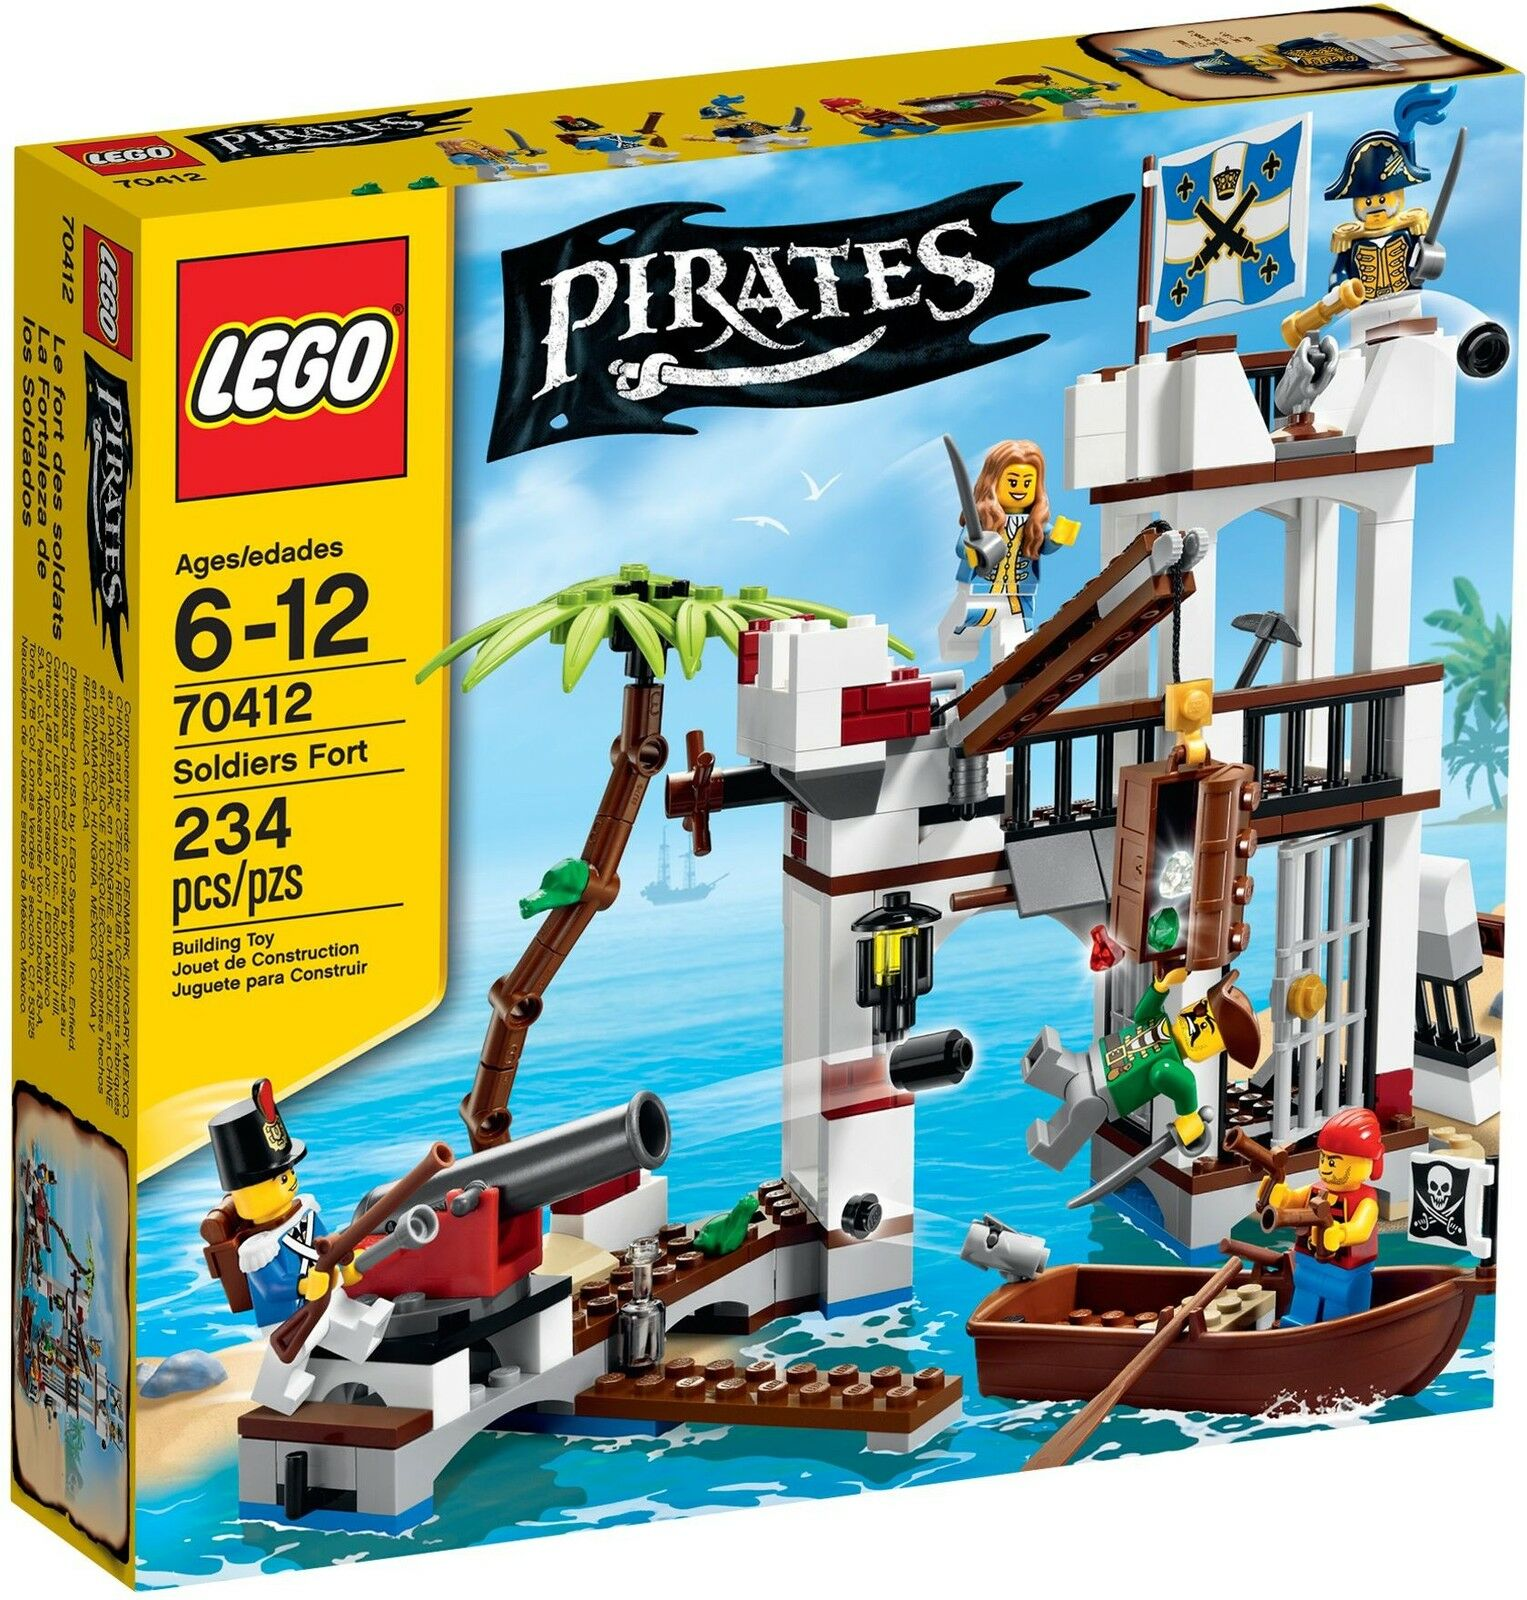 LEGO Pirates - 70412 soldati Fort-NUOVO & OVP